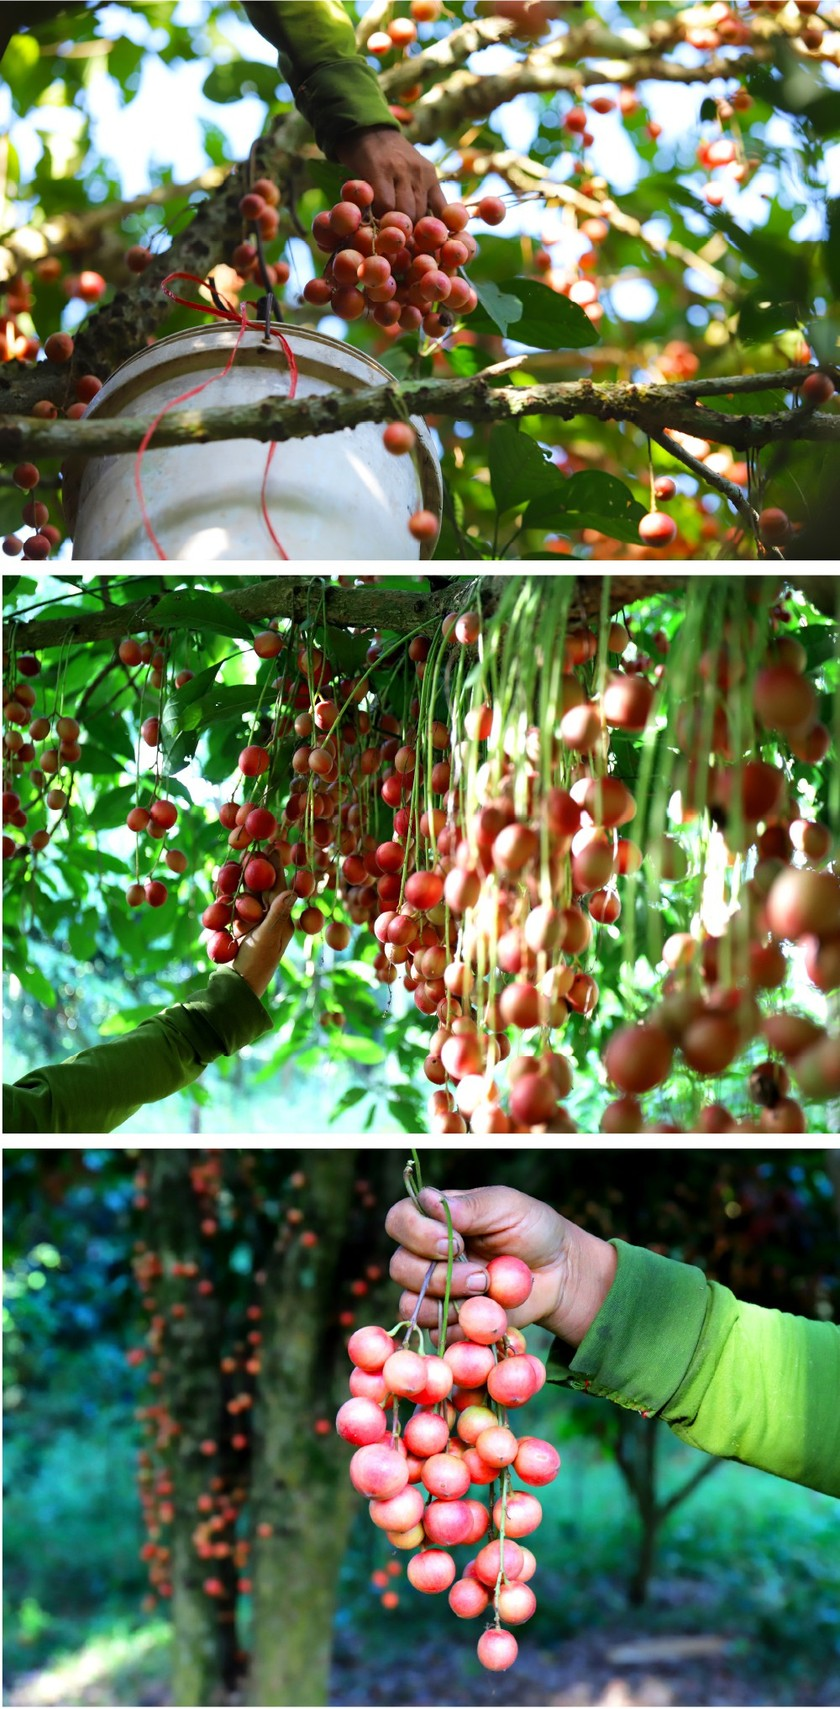 Beauty of burmese grape trees full of fruits in central mountainous district ảnh 10